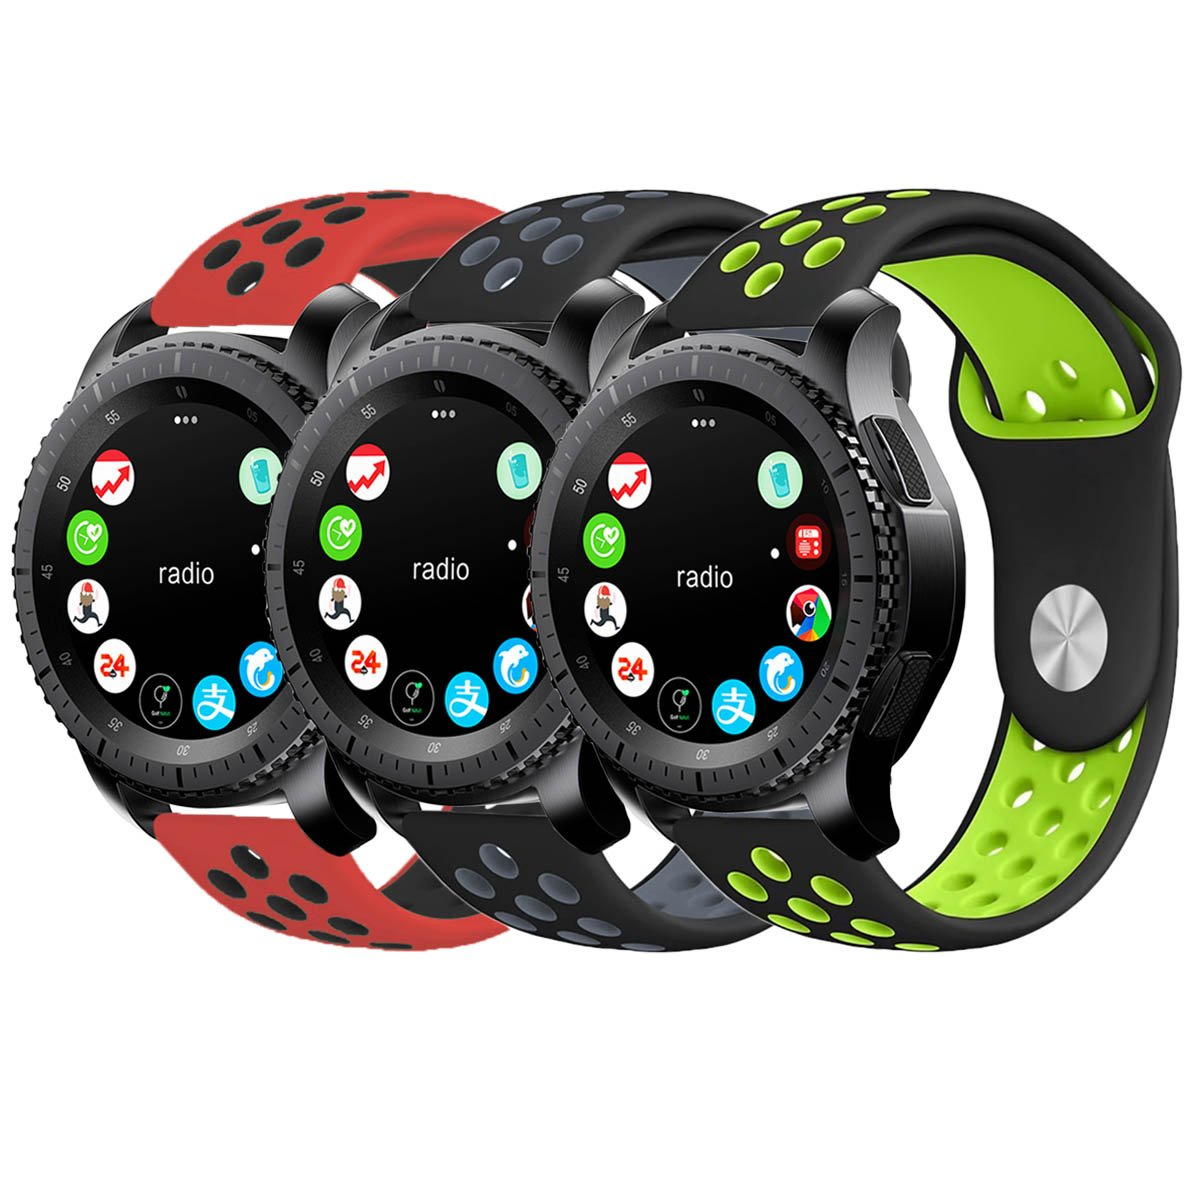 Gear S3 Bands, KADES Silicone Replacement Strap Compatible for Samsung Galaxy Watch 46mm/ TicWatch Pro/Gear S3 Frontier/Gear s3 Classic/Moto 360 2Gen 46mm/ Amazfit Stratos Smart Watch